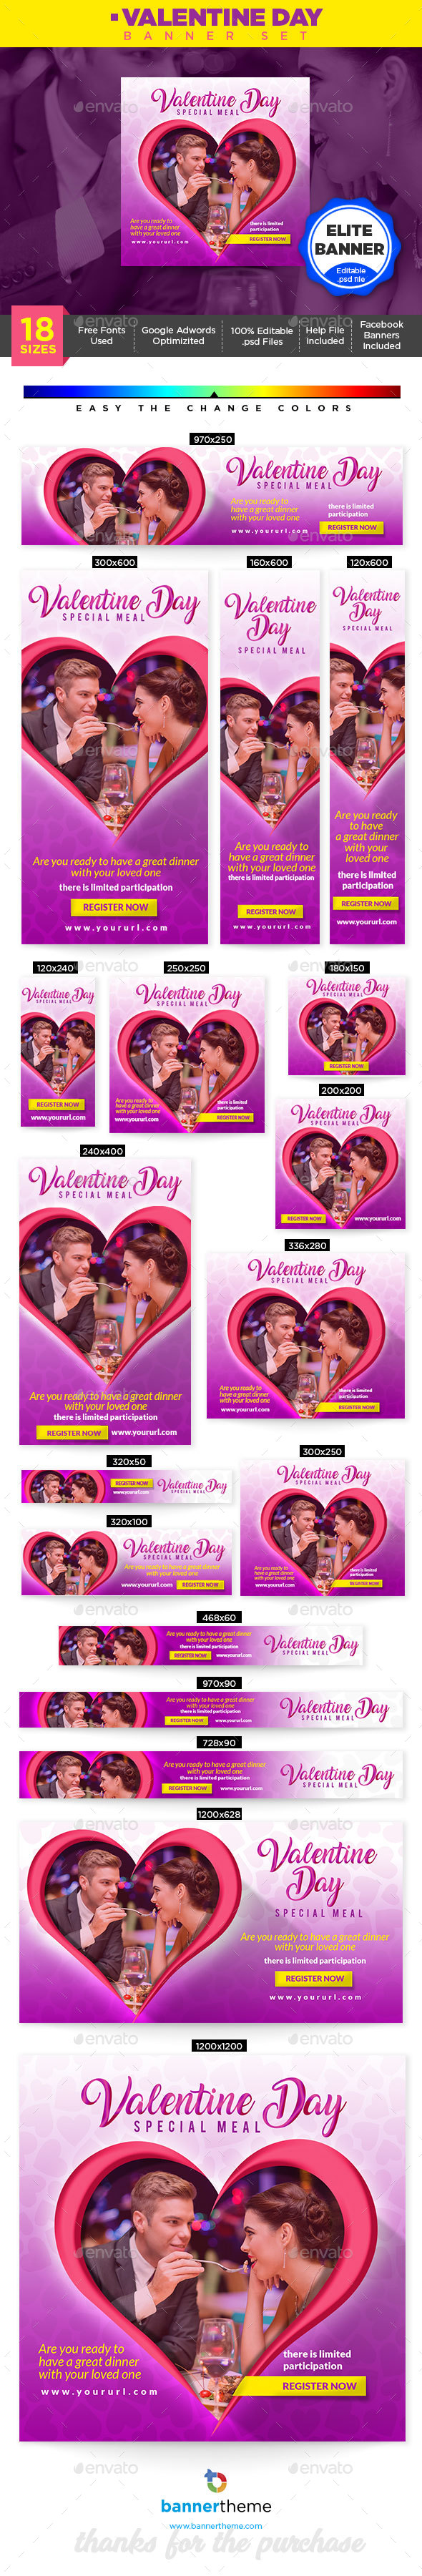 Valentine Day Banner - Banners & Ads Web Elements